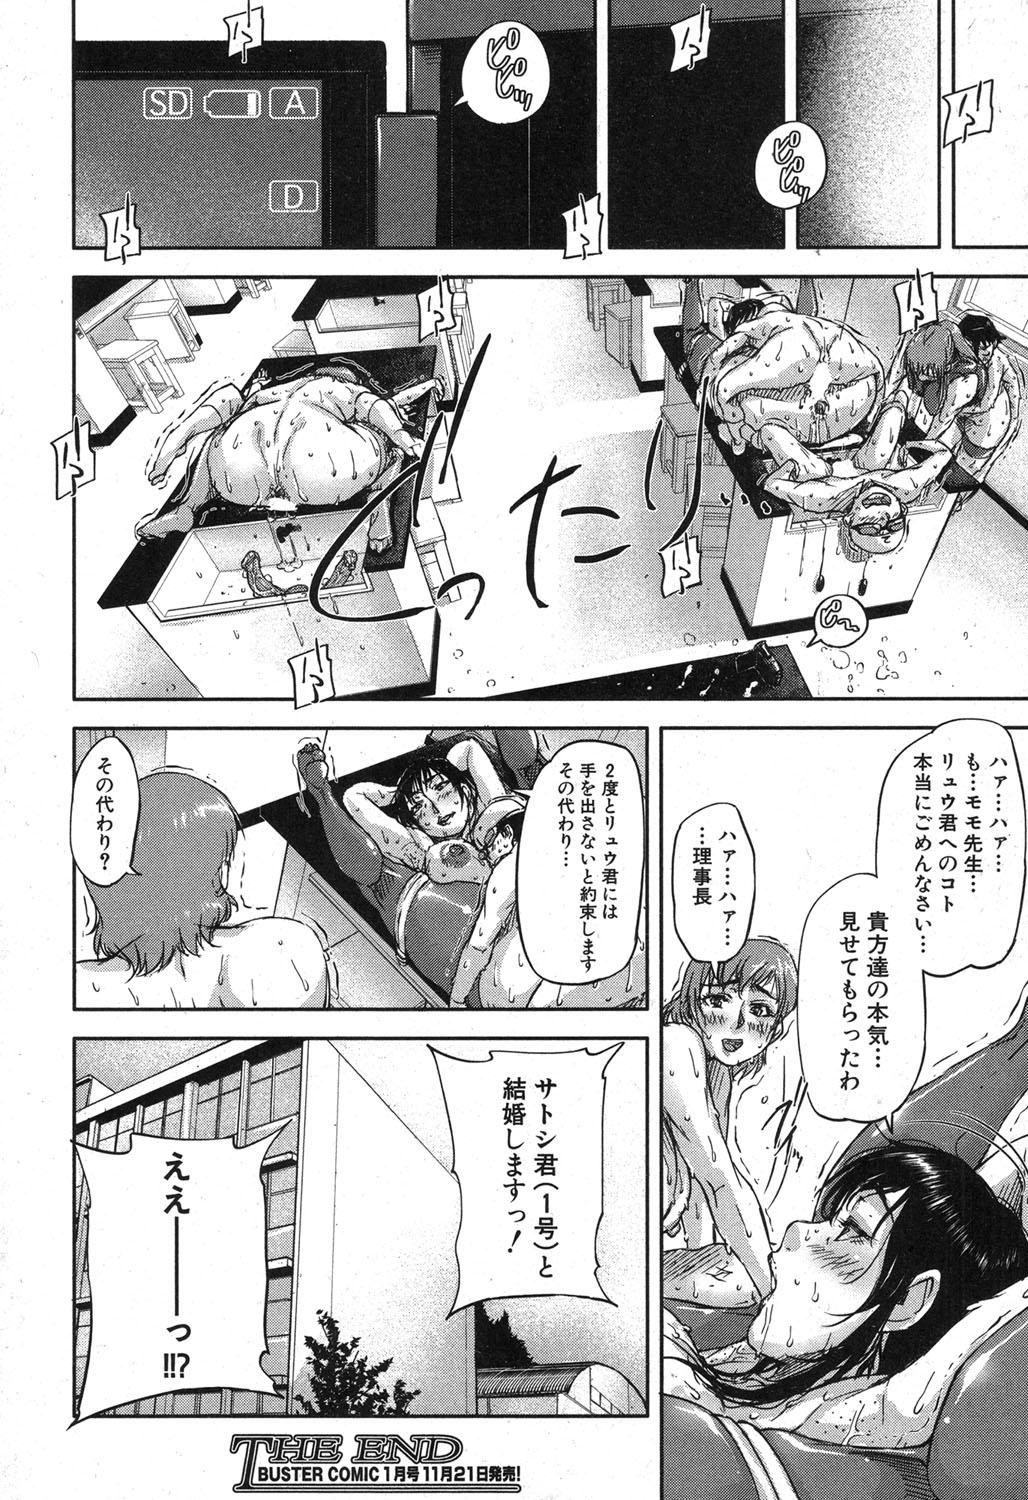 BUSTER COMIC 2015-11 216